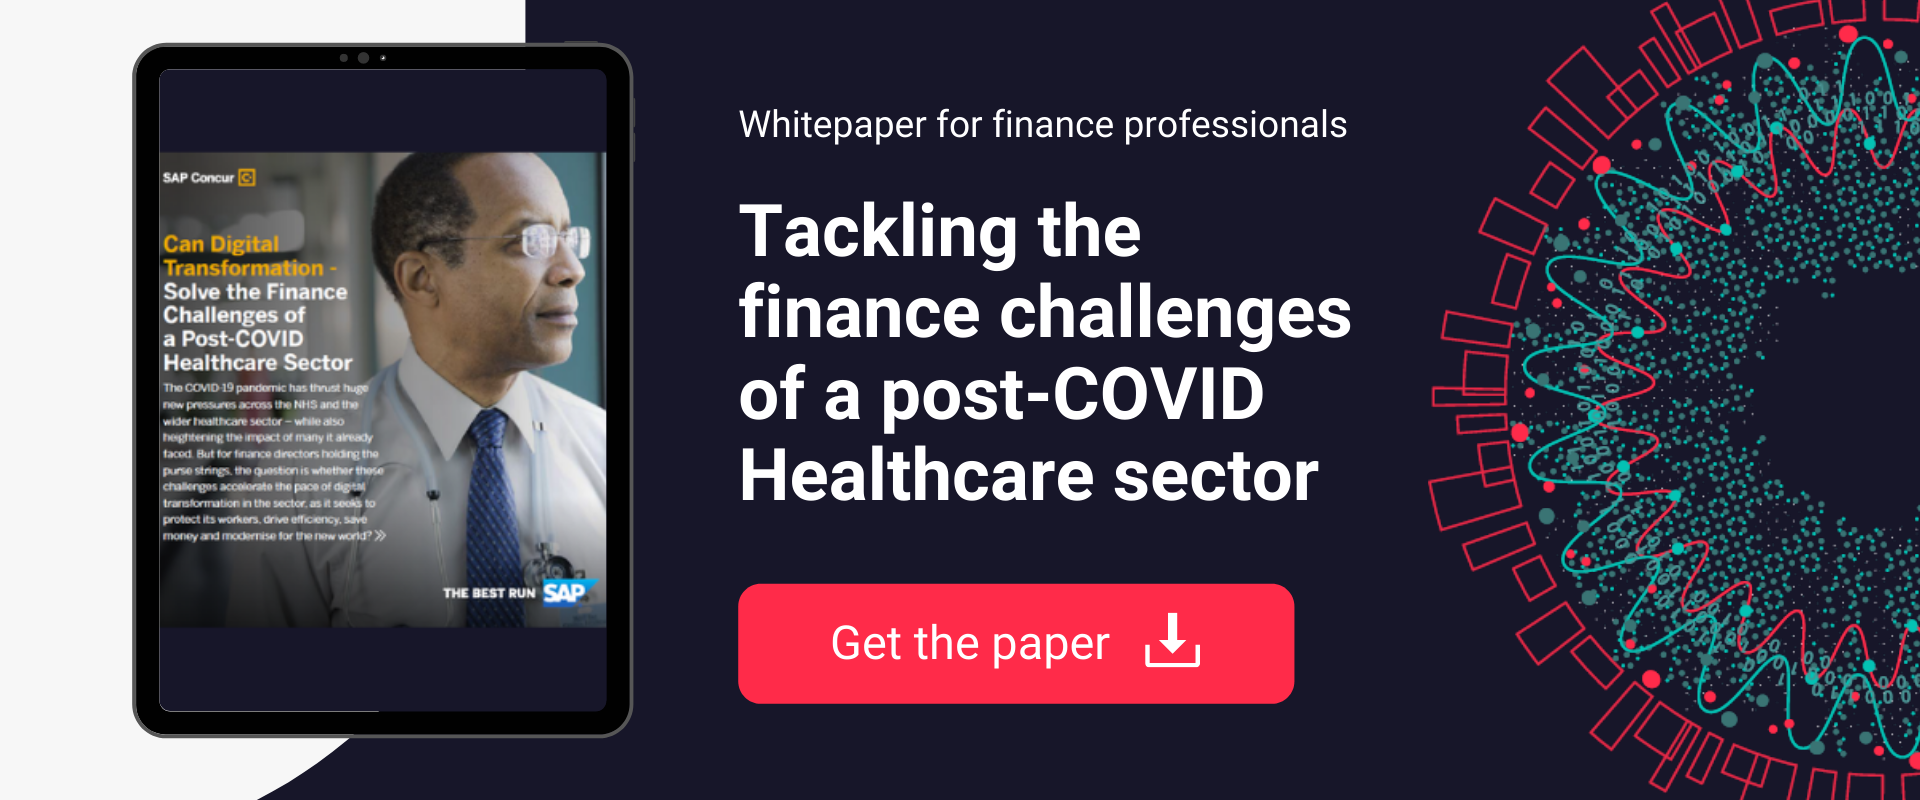 Download the whitepaper 'Tackling the finance challenges in a post-COVID Healthcare sector'.